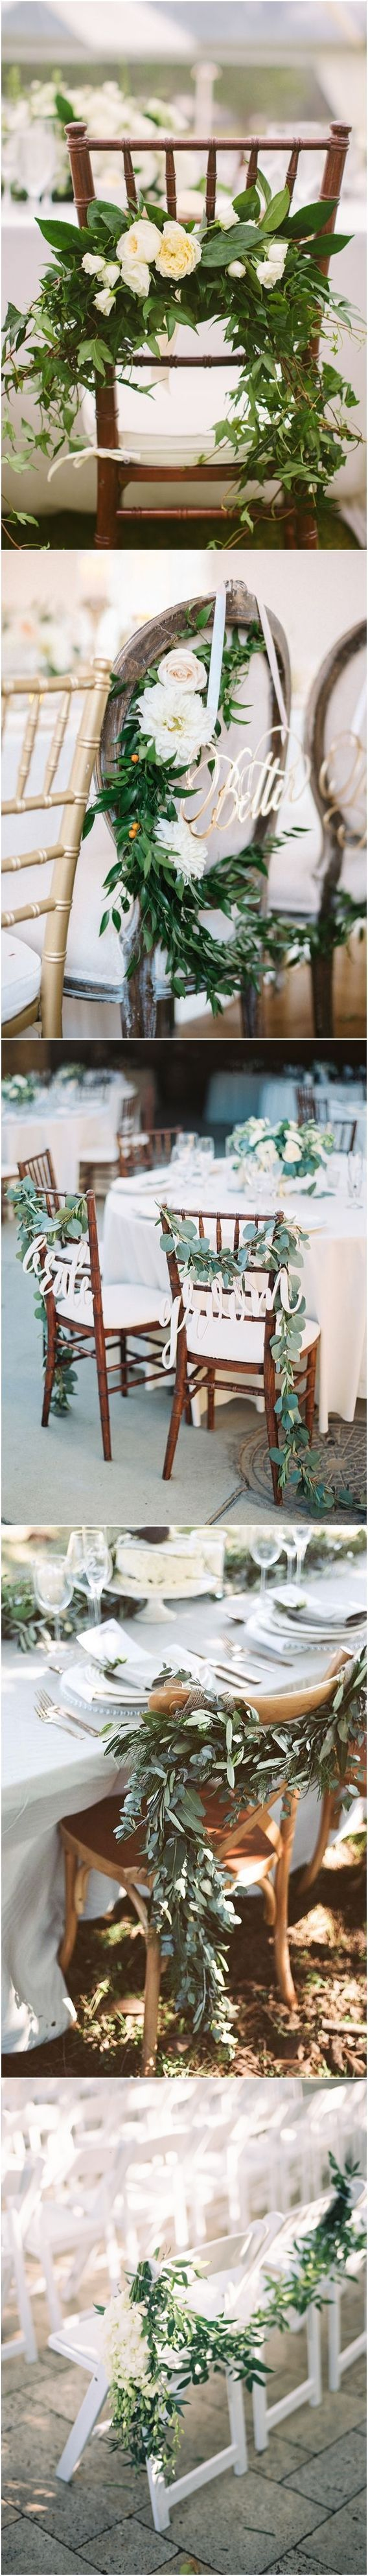 Greenery wedding chair decor ideas / http://www.deerpearlflowers.com/greenery-wedding-decor-ideas/